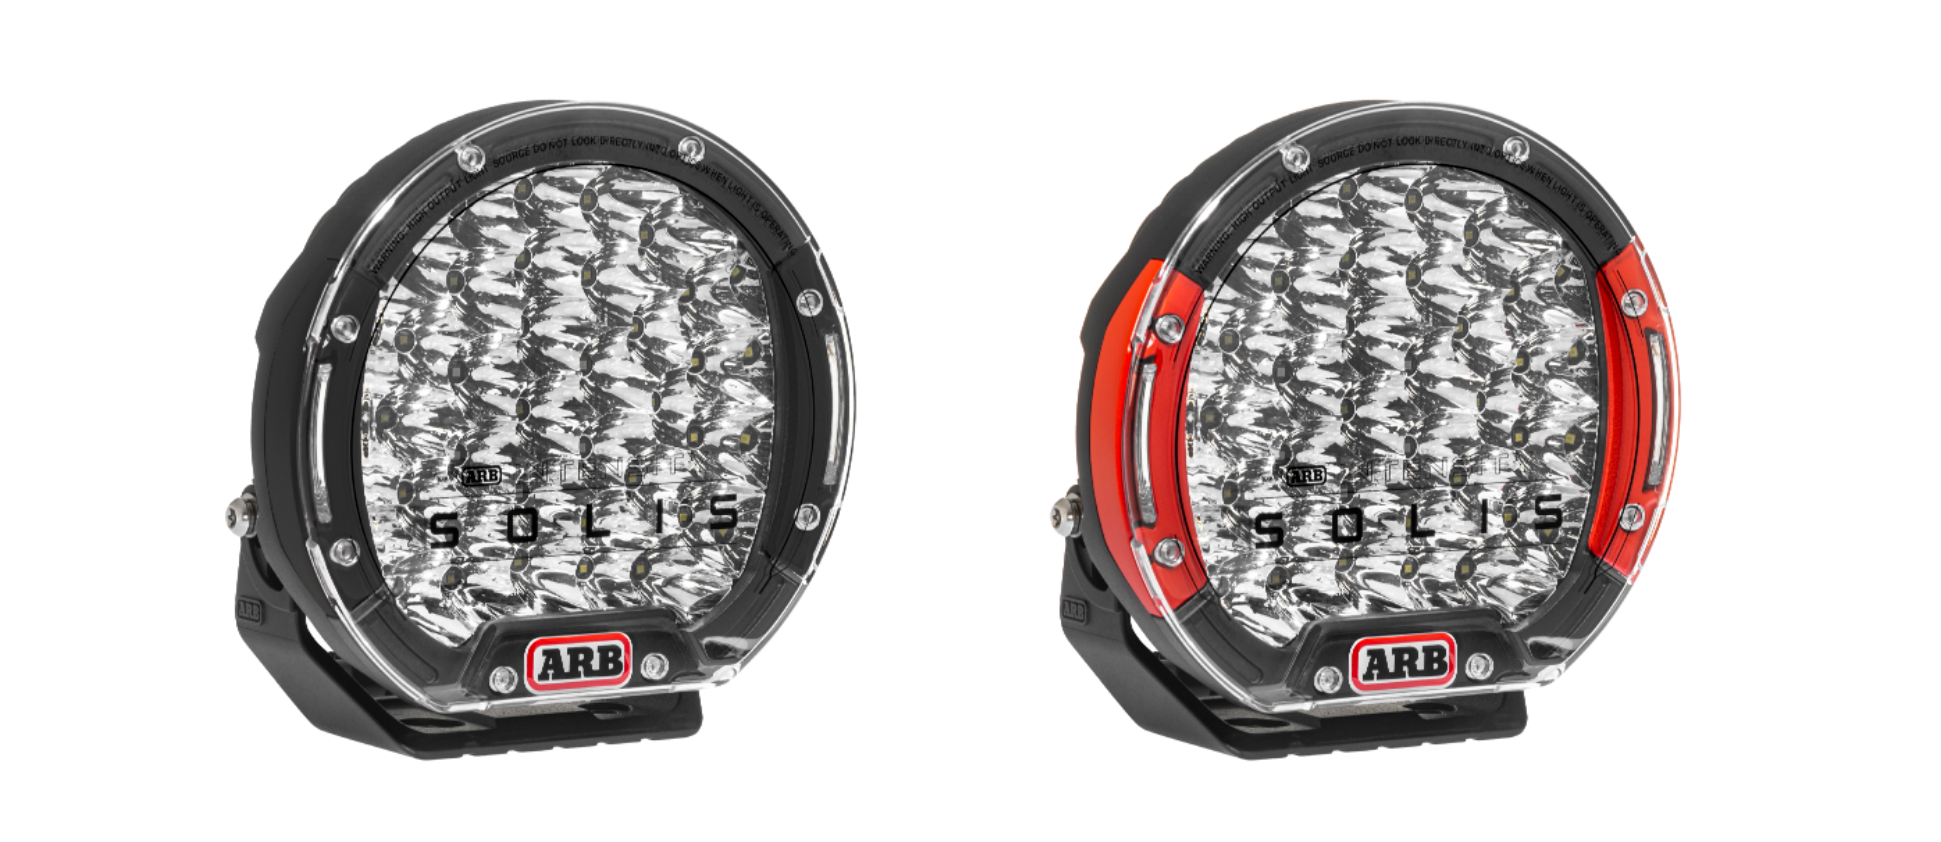 All-new ARB Intensity Solis dimmable LED driving light